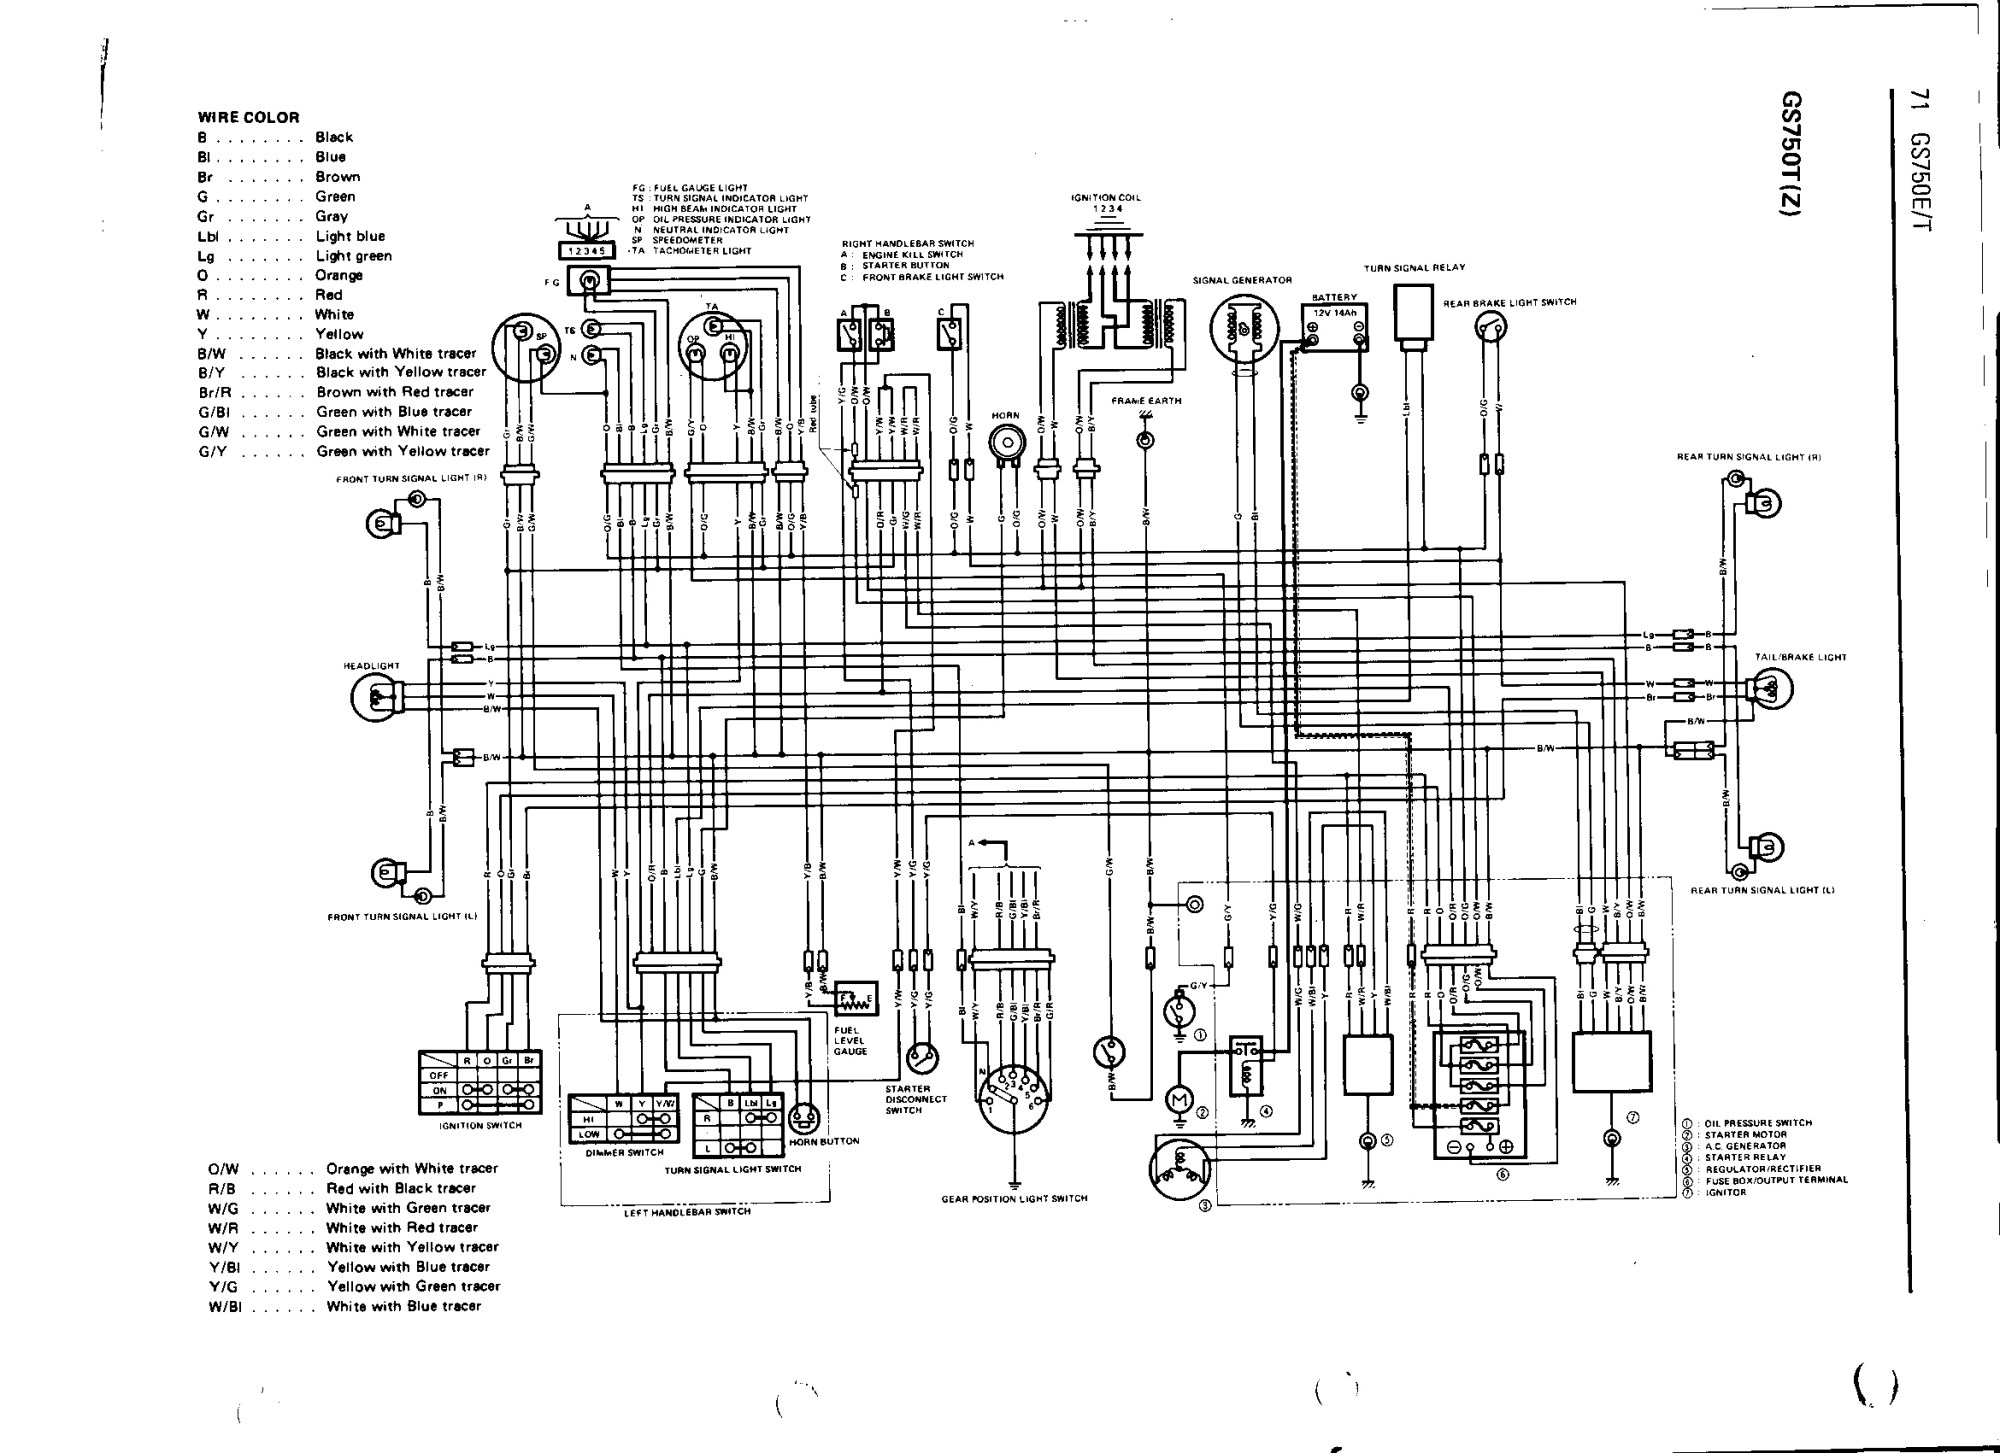 hight resolution of lutron sf 10p wiring diagram 28 wiring diagram images